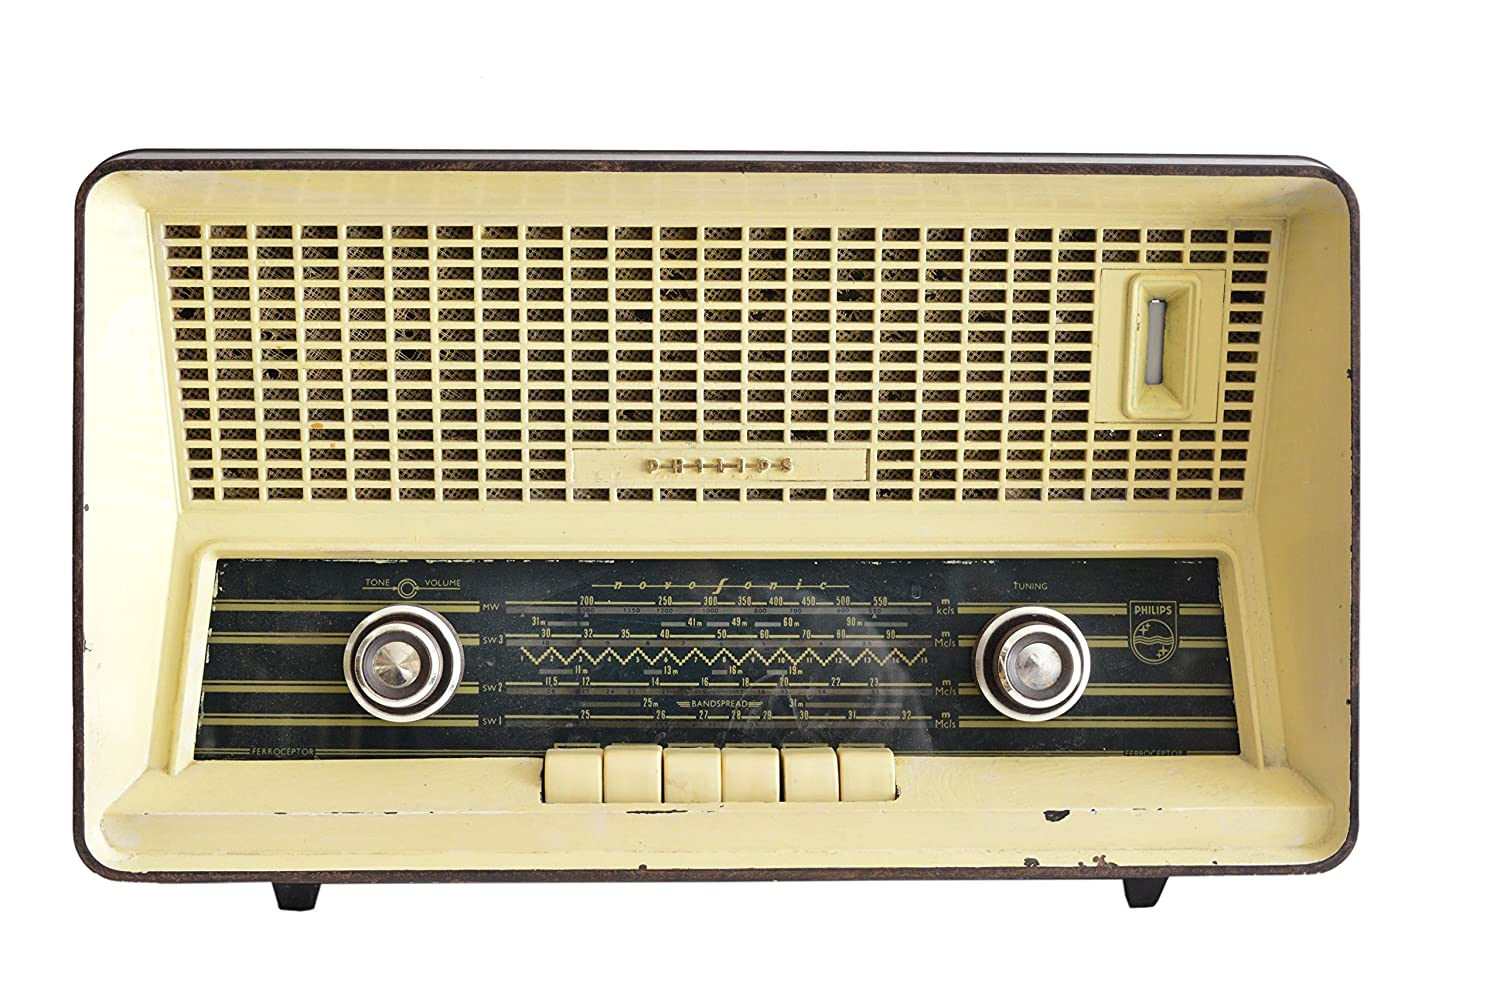 Buy Antique Old Rare Radio FM for Listen Music Music Instrument Antique Old Radio Player Online at Low Prices in India - Amazon.in